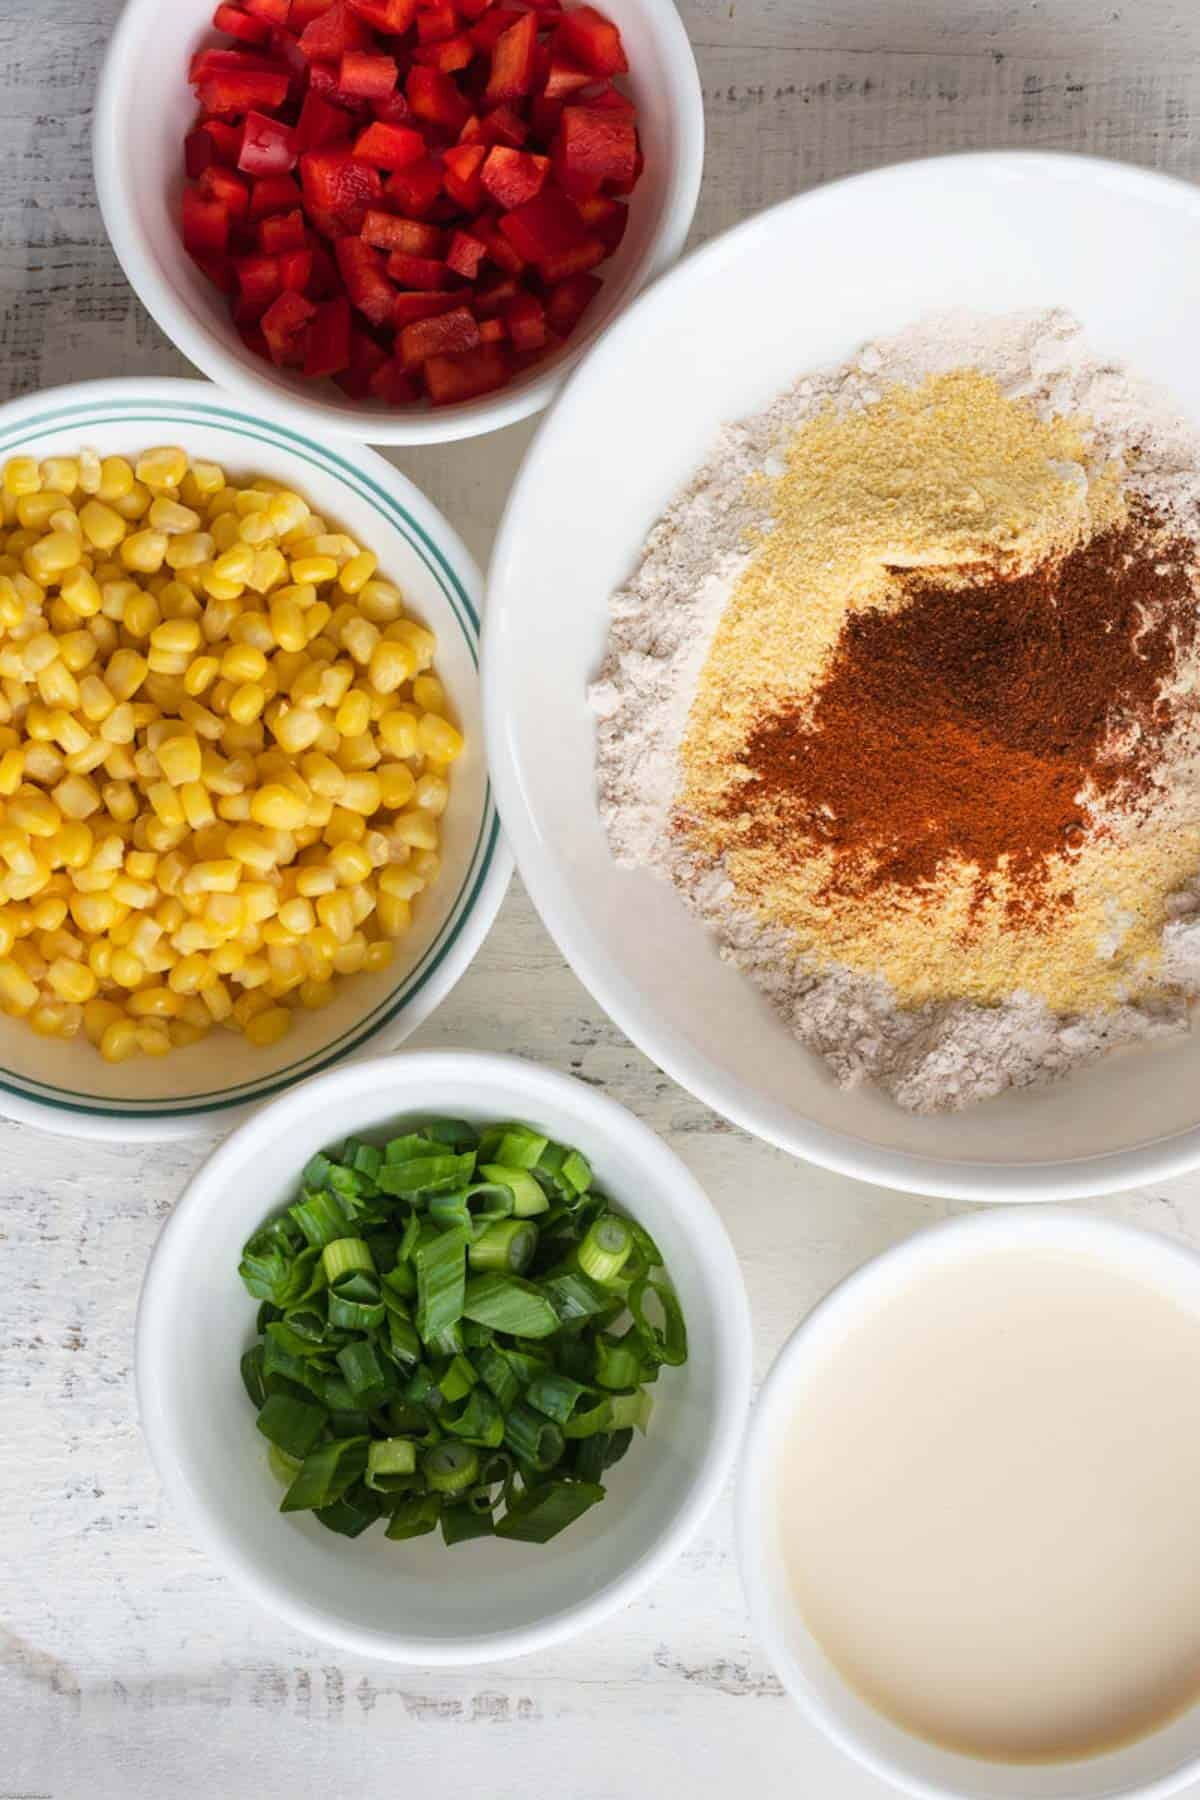 Ingredients: chopped red bell pepper, chopped scallions, corn, soy milk, flour, cornmeal, and spices.